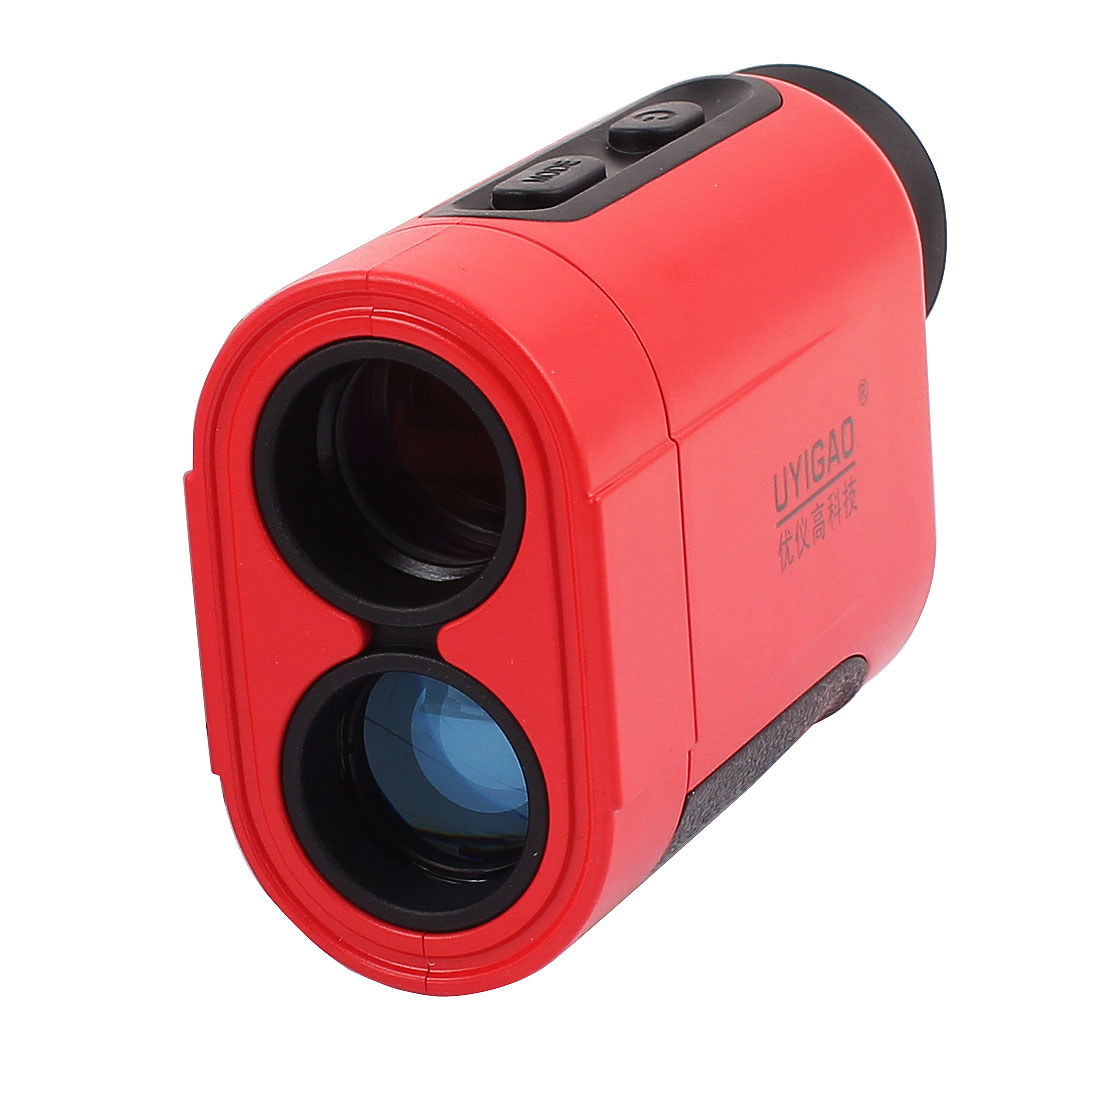 UYIGAO Authorized Outdoor Travel Handheld Dual Objective Lens Scan Mode Monocular Rangefinder 6X Magnification 900M